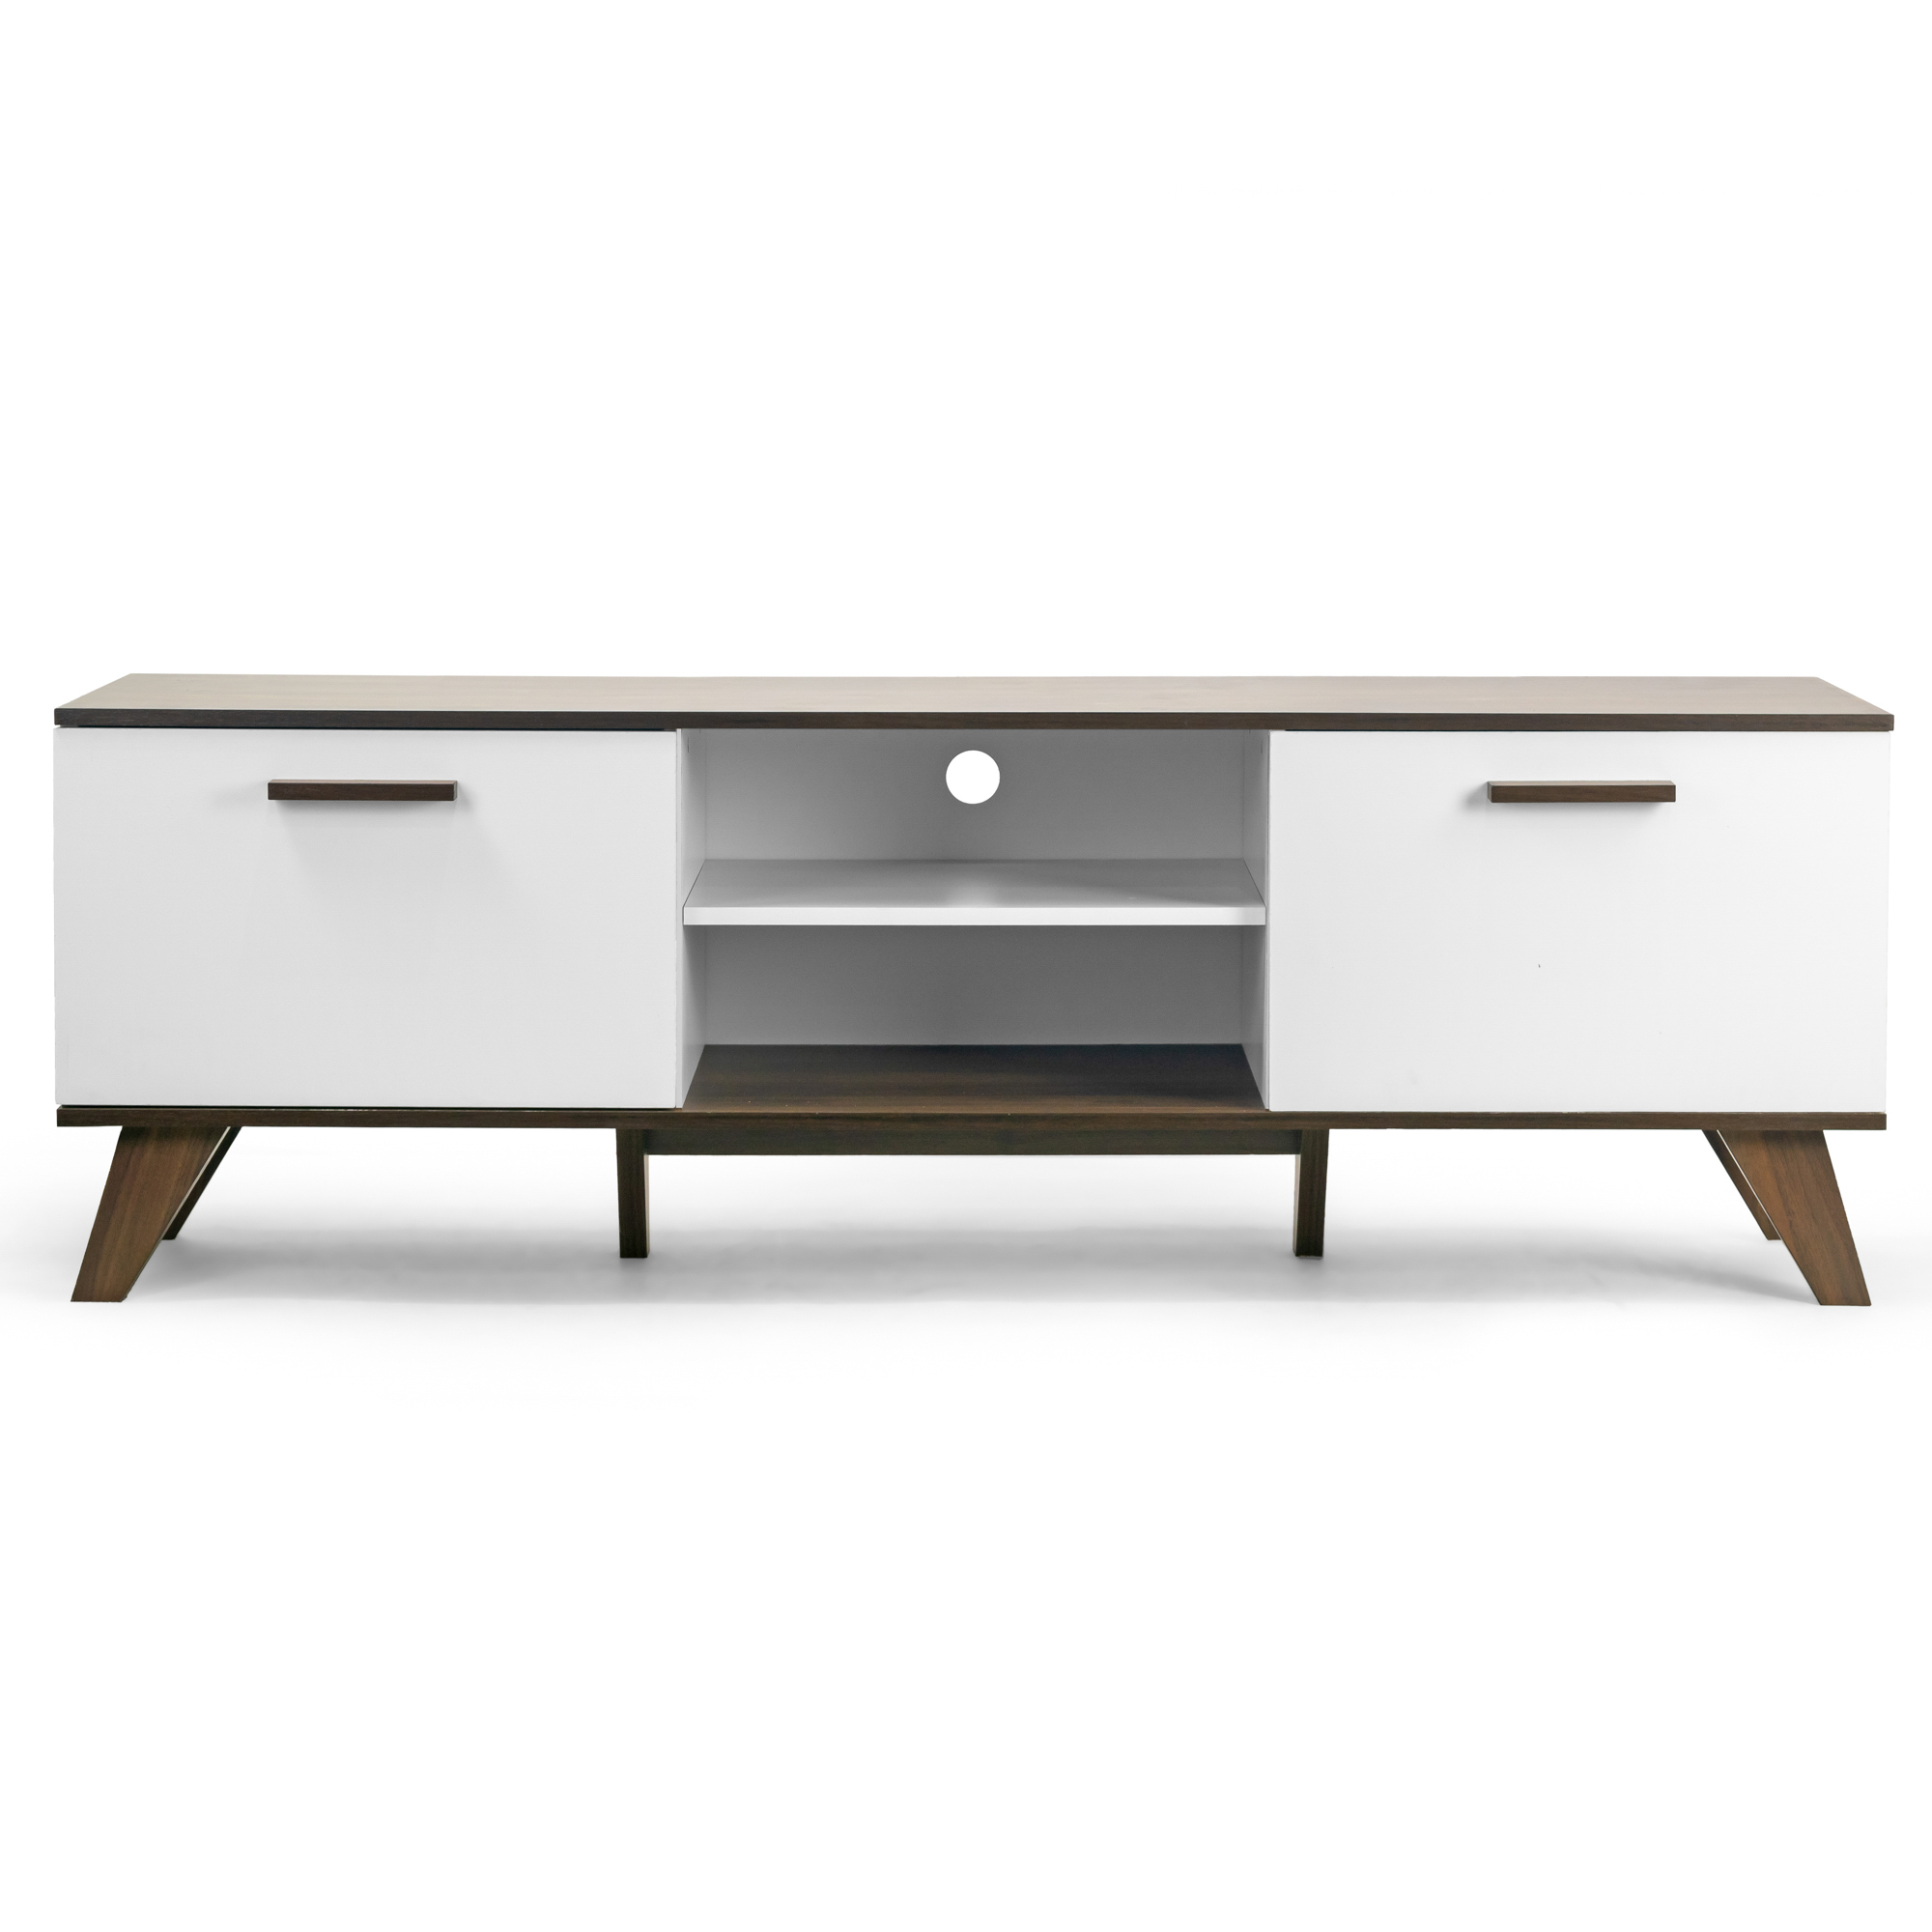 Annis Tv Stand Walnut Finish With Contrasting White Door Walmart Com Walmart Com